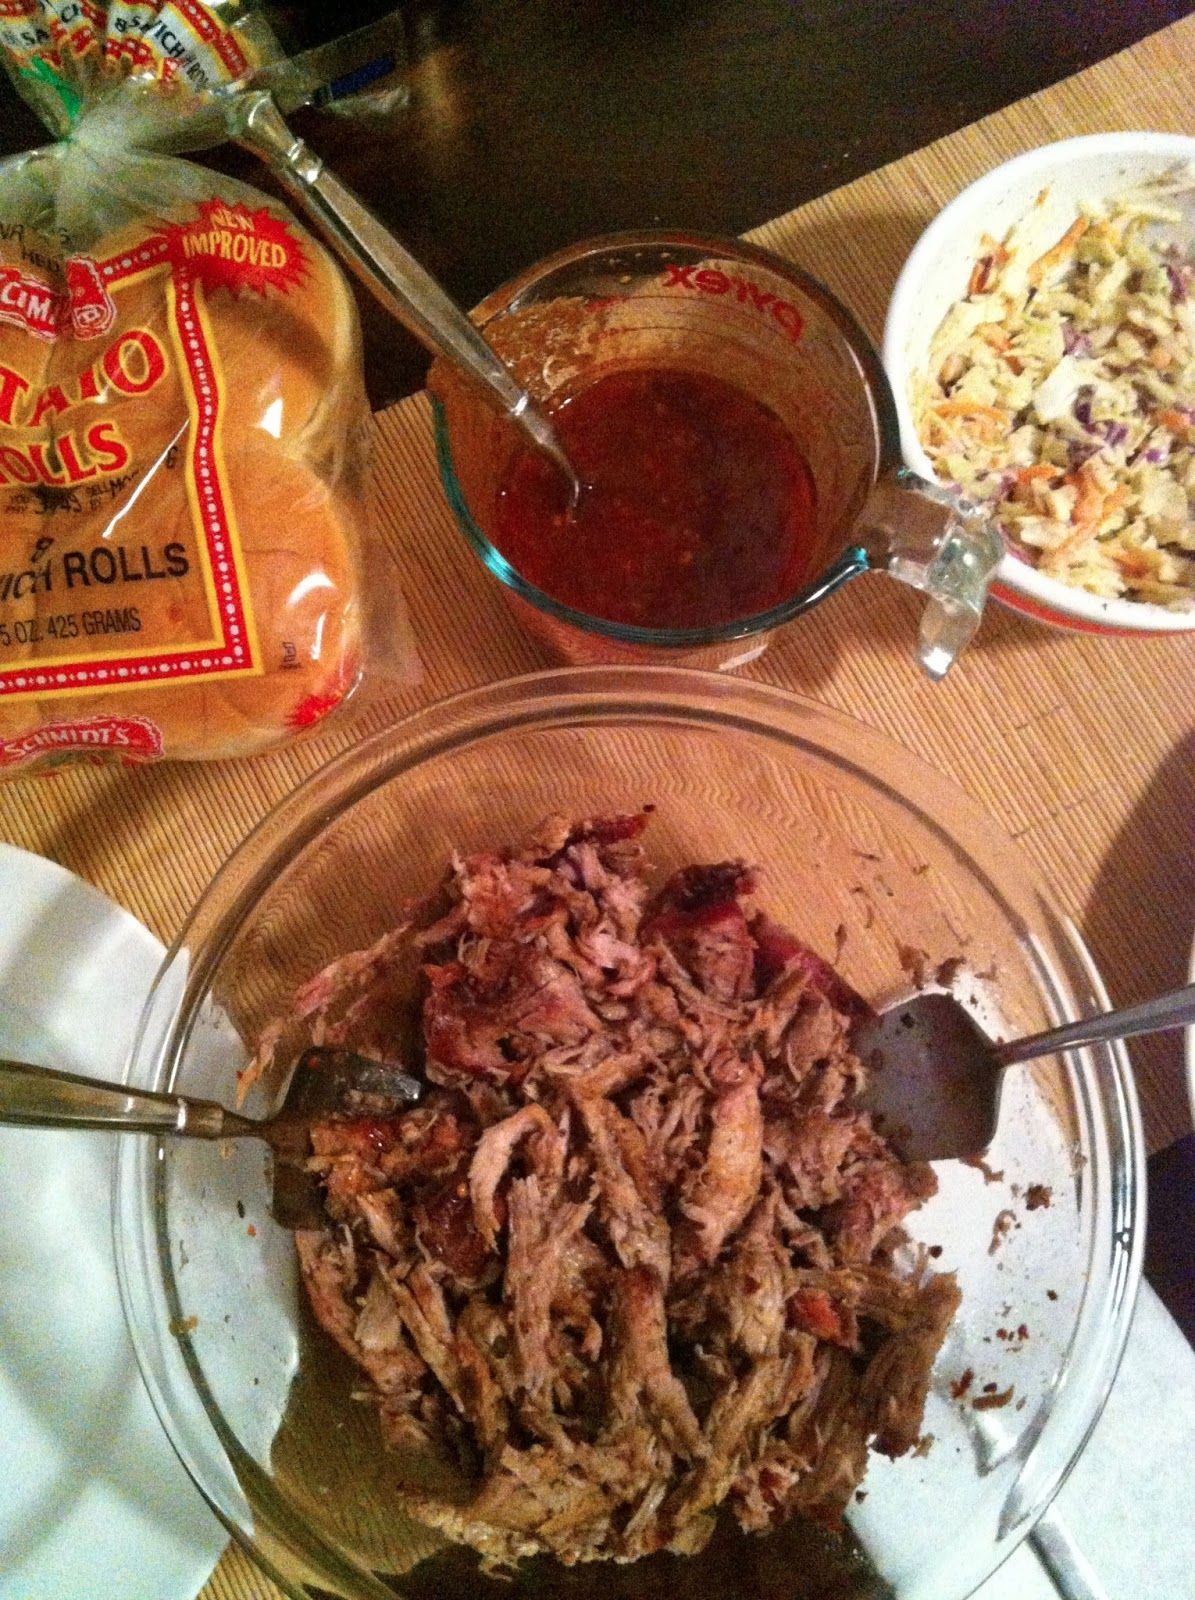 taylor made: slow-cooked pork barbecue & homemade bbq sauce